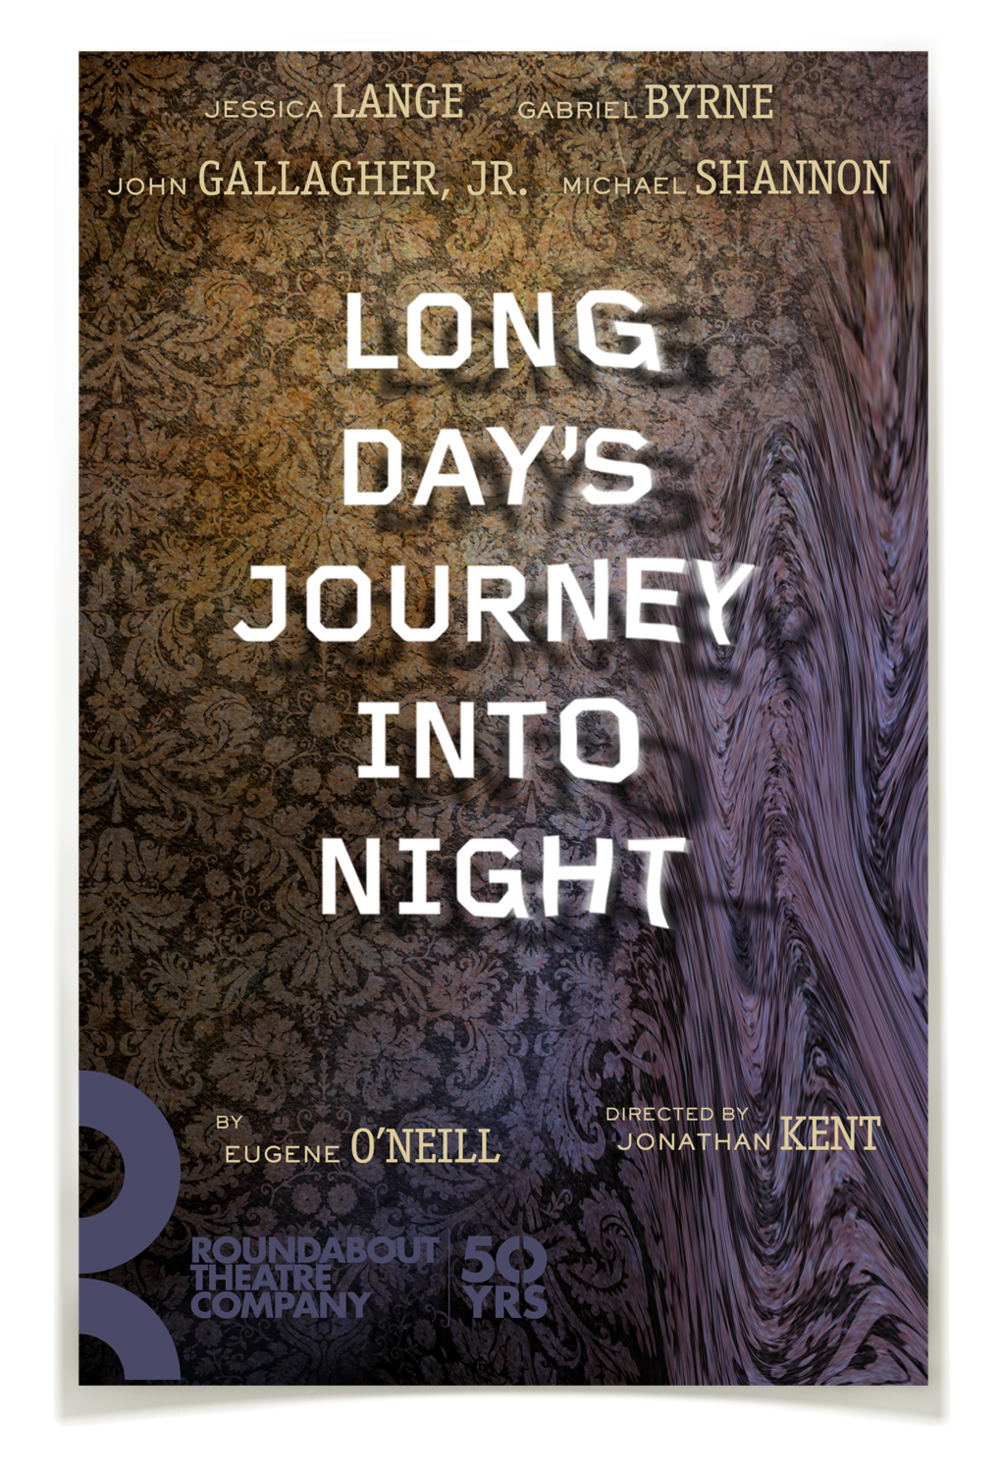 covell_design_long_days_journey_3.png